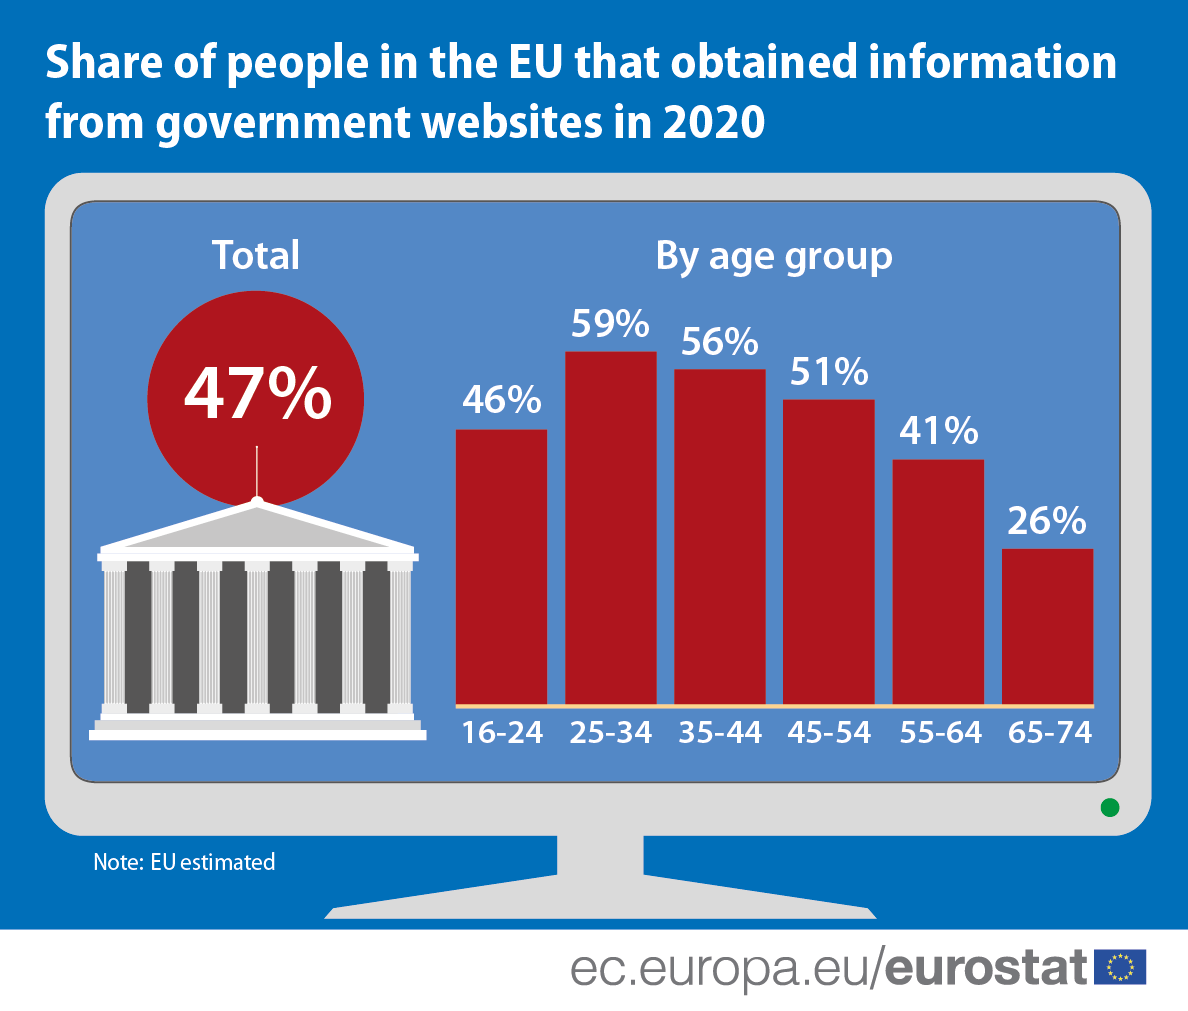 Infographic: Share of persons in the EU that obtained information from government websites in 2020